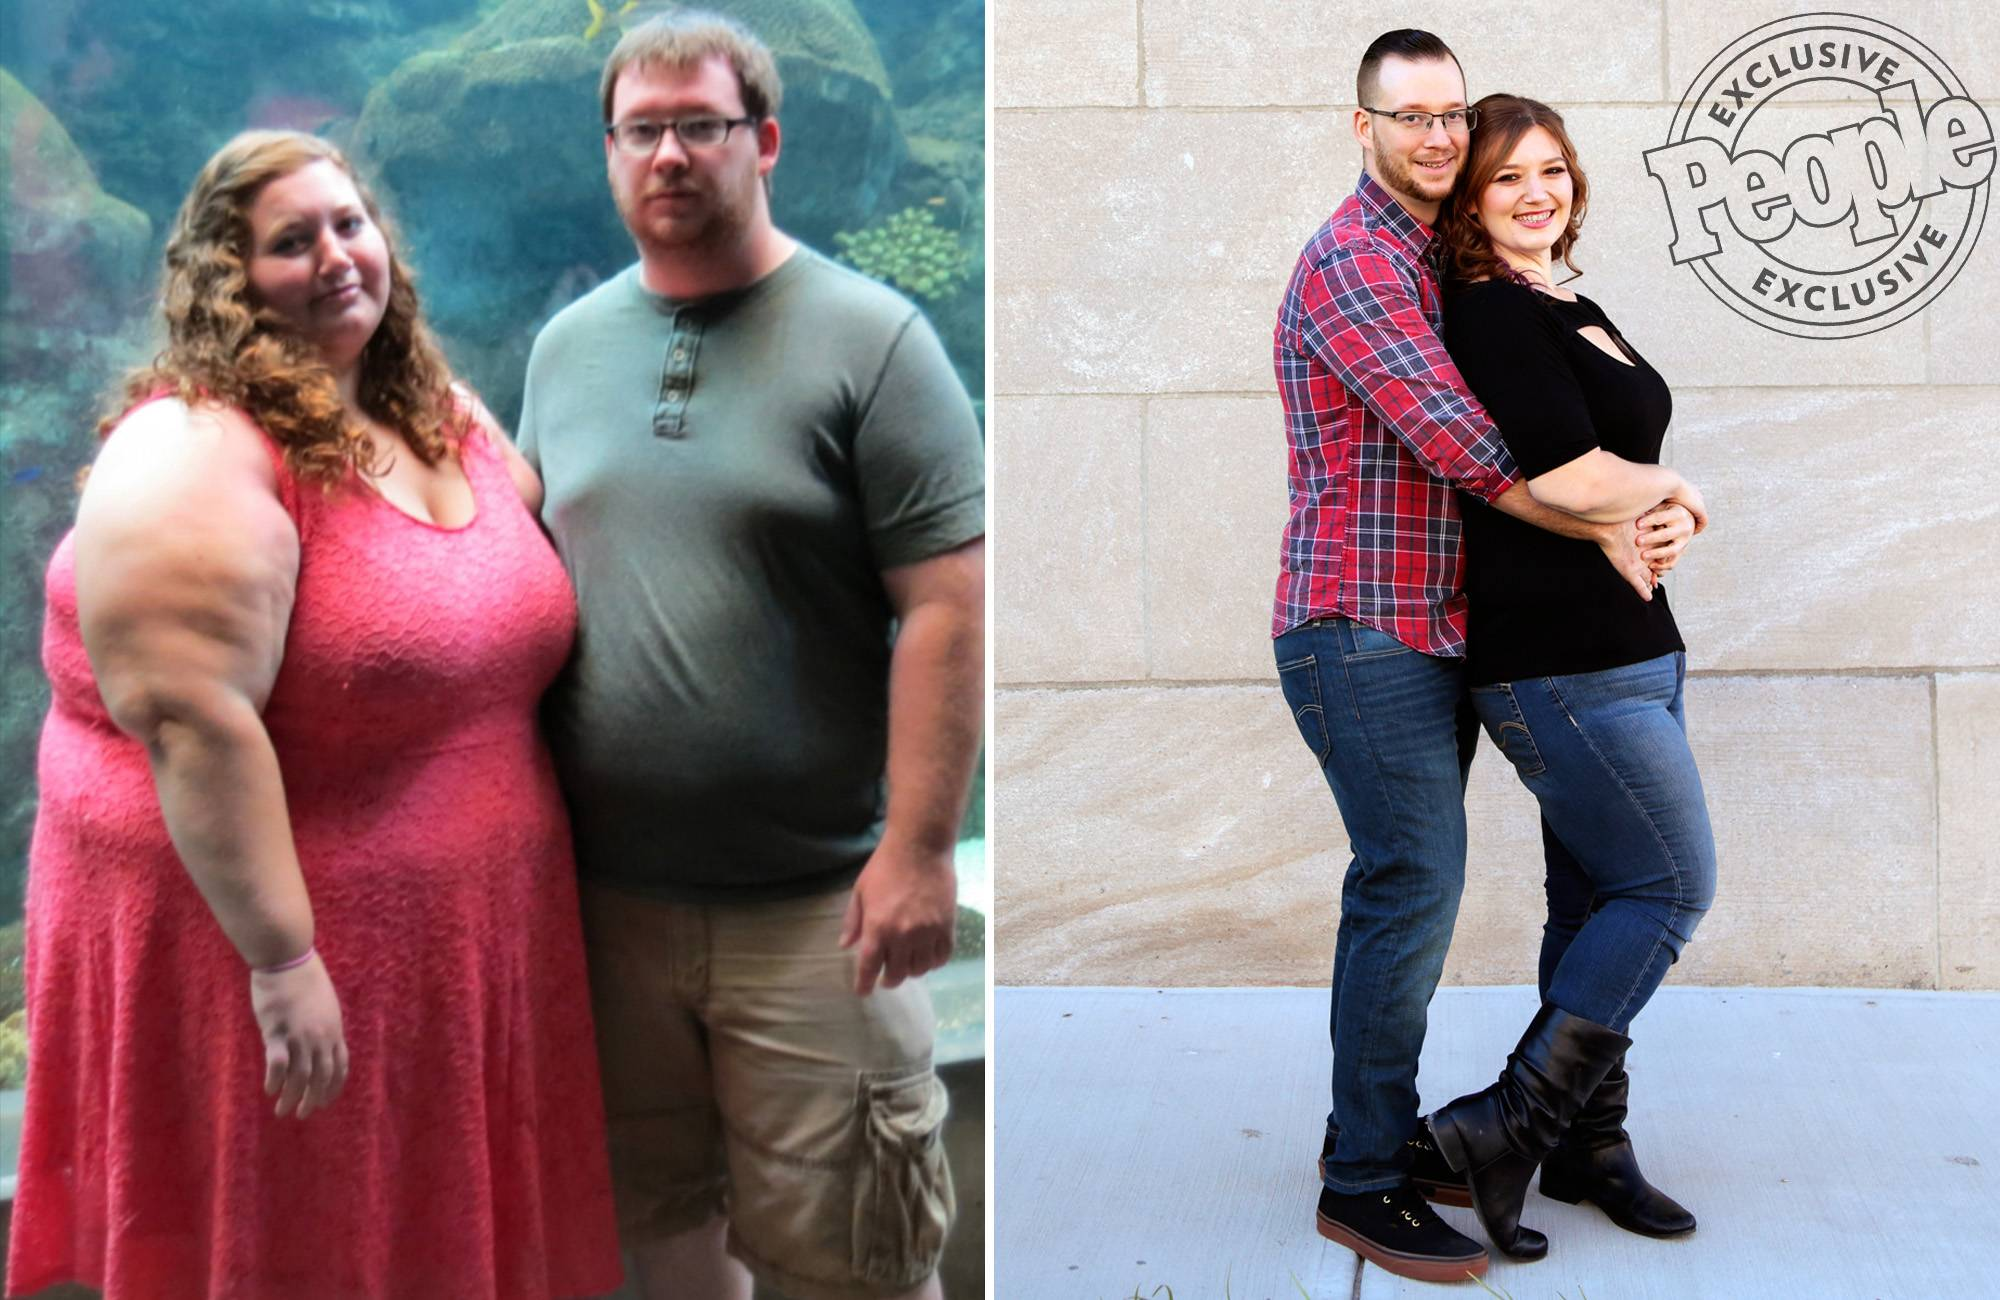 This Couple Dropped 395 Lbs. Together: 'We Fell in Love with Taking Care of Ourselves'